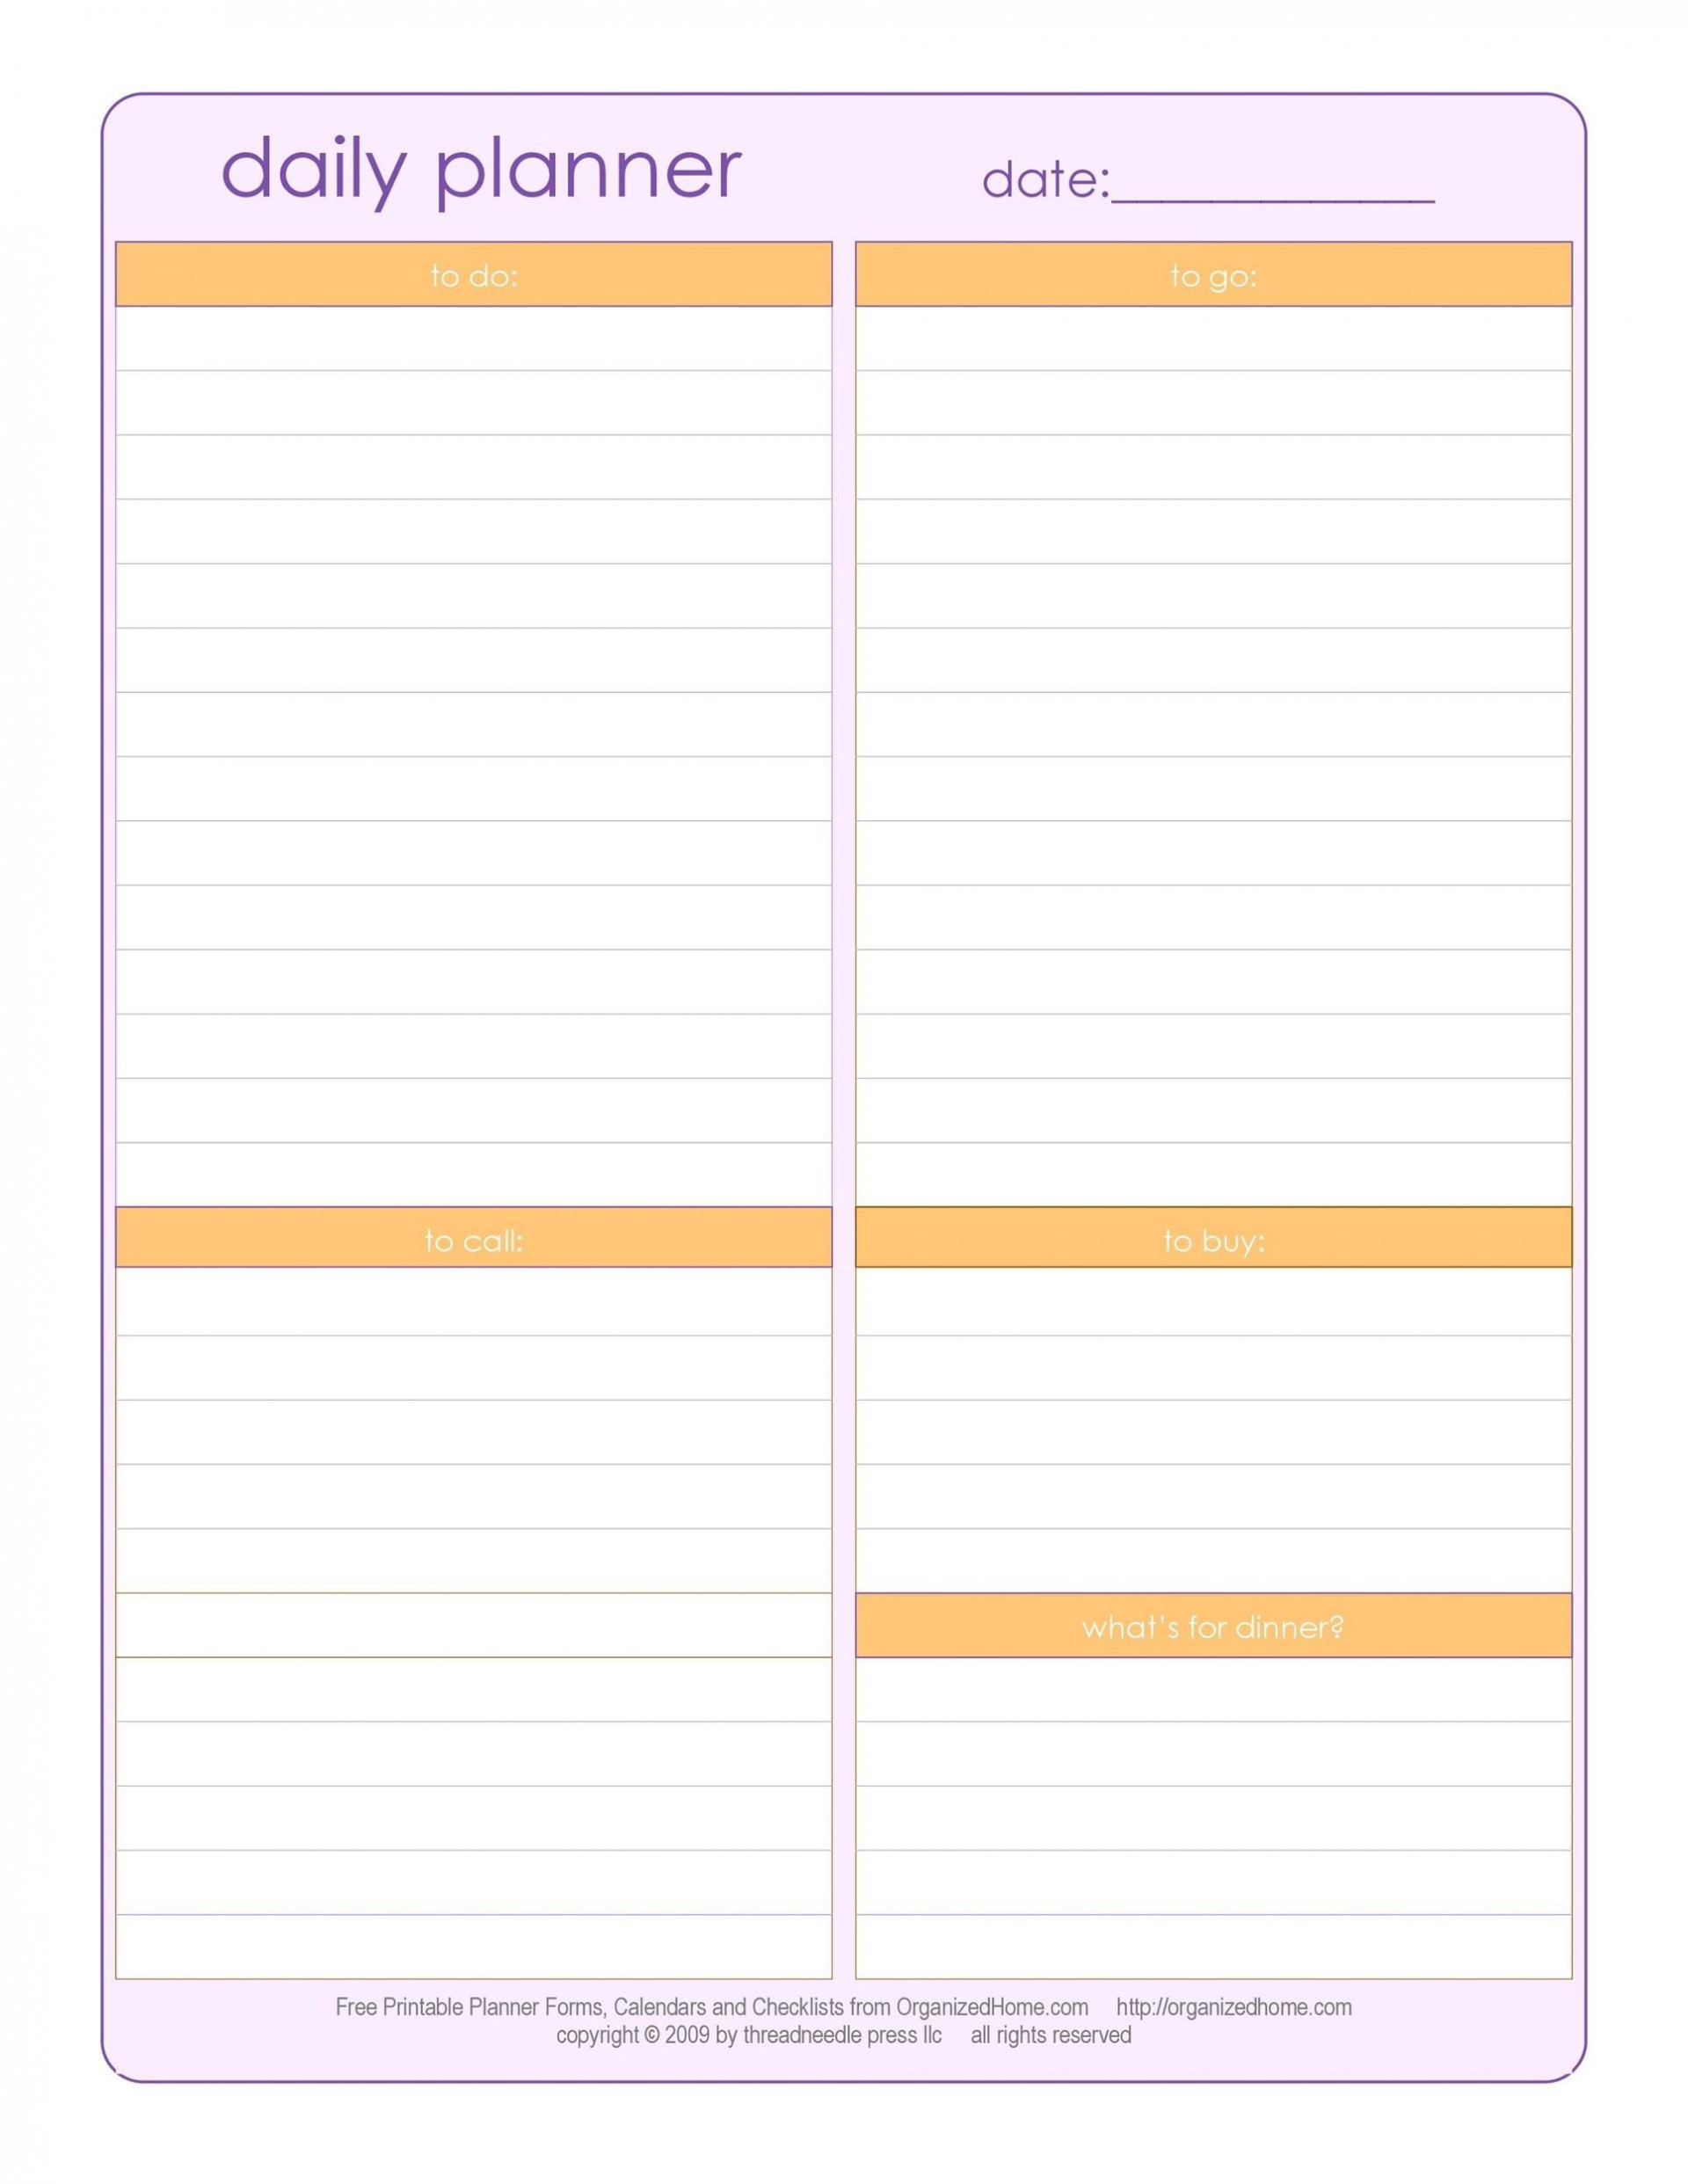 004 Stupendou Daily Schedule Template Printable Picture 1920